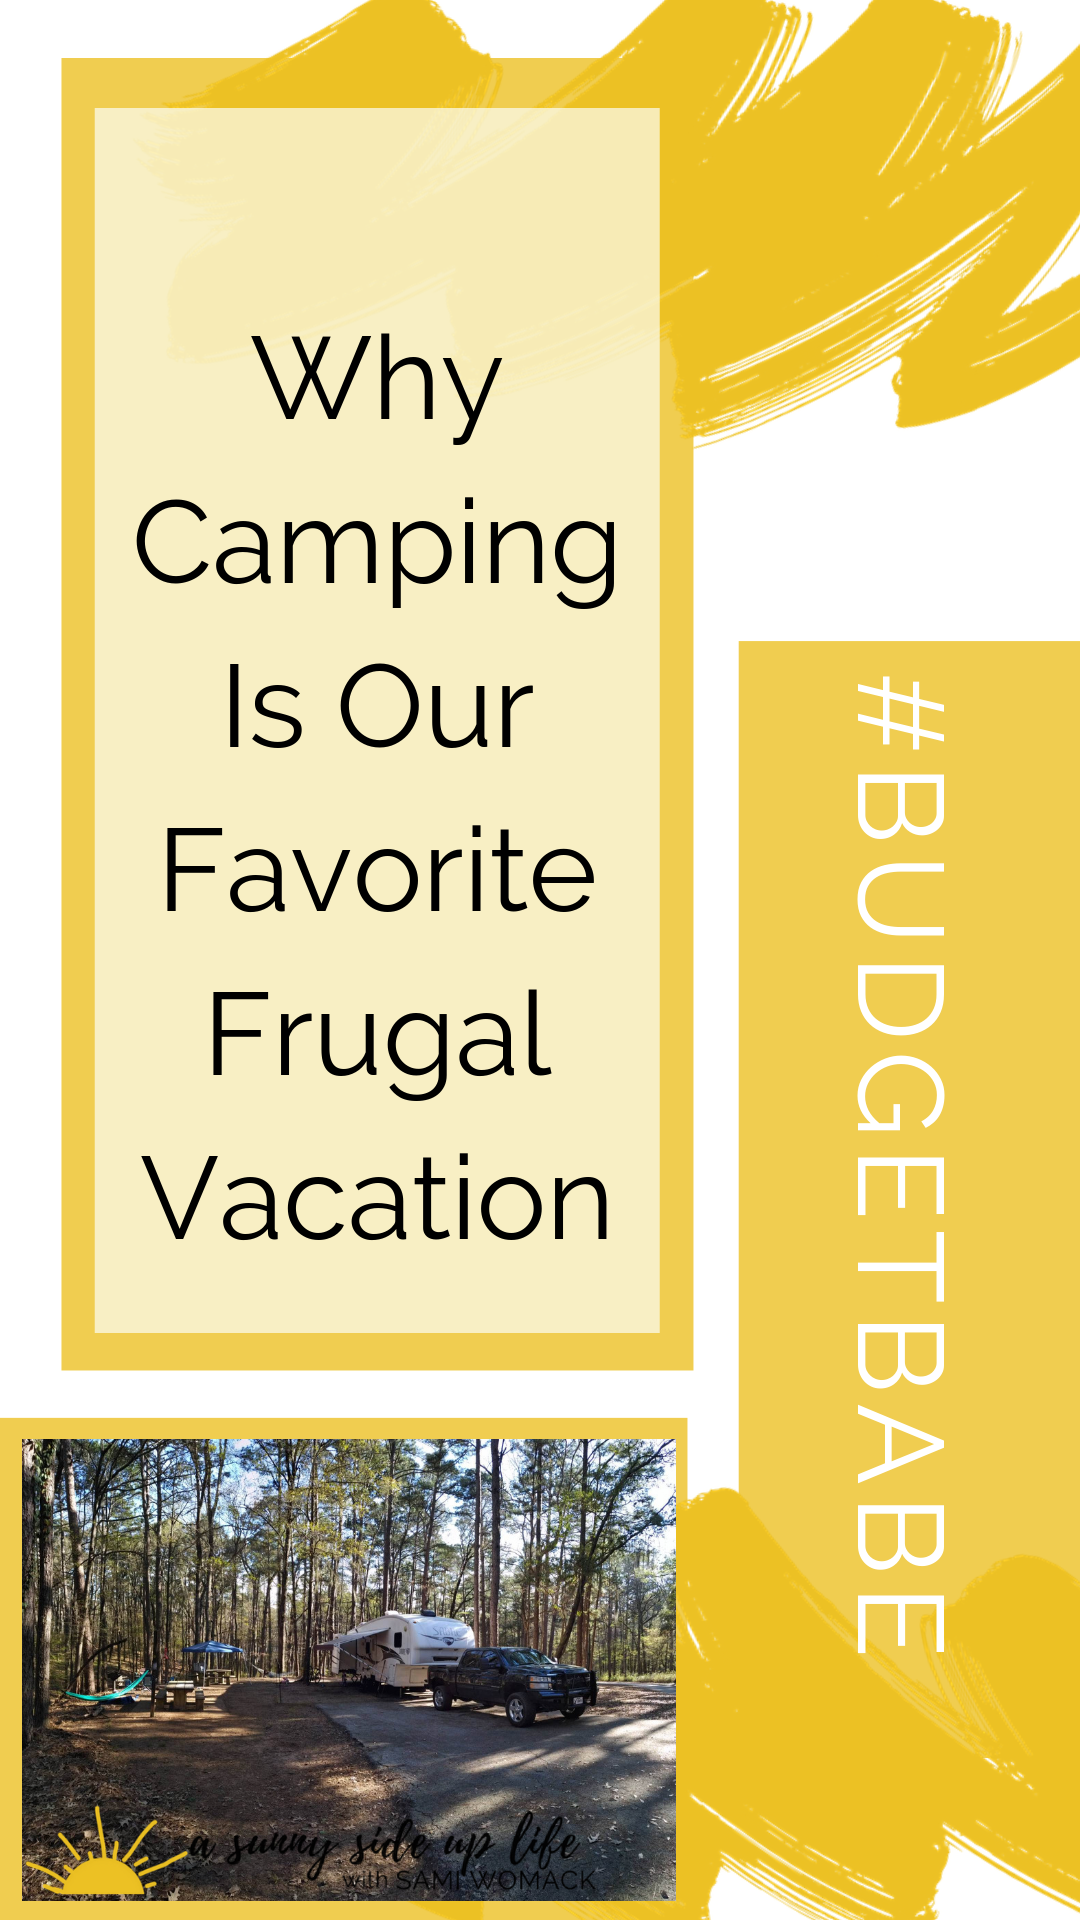 why camping is our favorite frugal vacation| beginning debt free journey | budgeting | budget | debt free family | frugal travel | budget friendly tips | where to start | summer fun on a budget | spring fun on a budget | frugal idea for kids on summer break